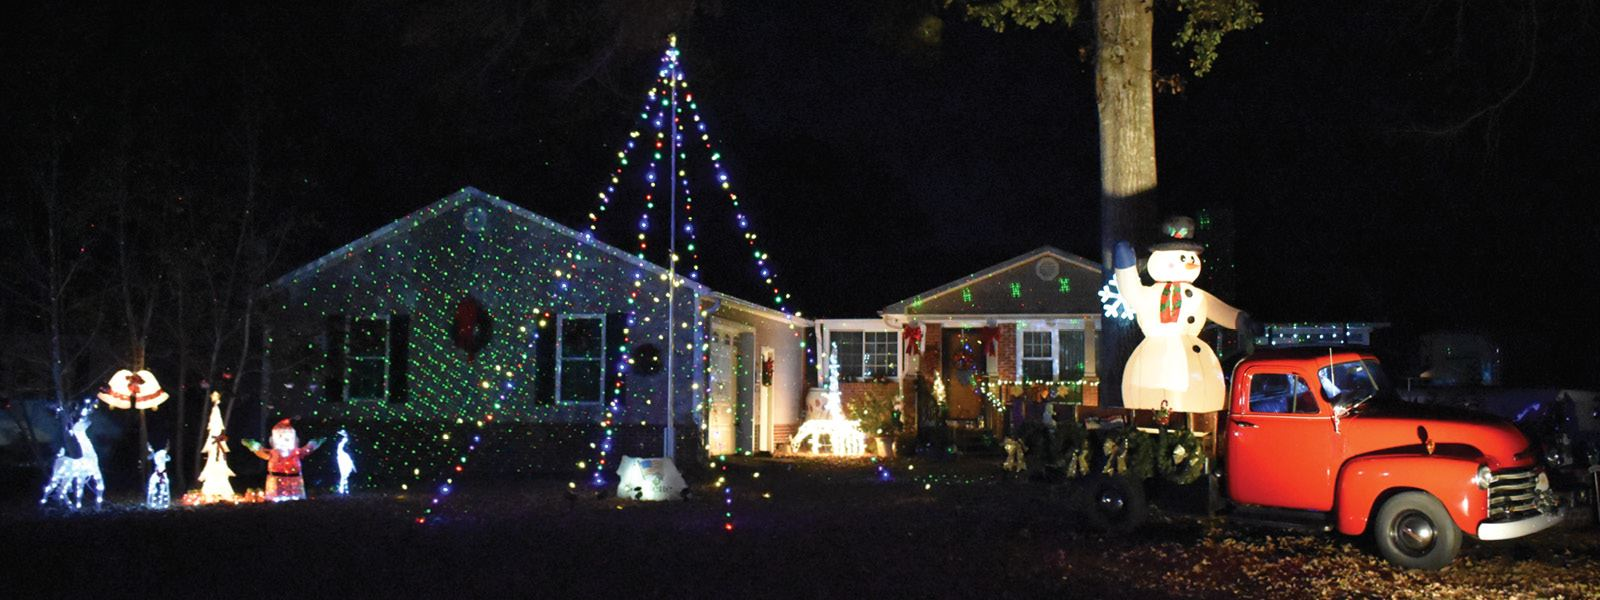 Holiday Home Decorating Contest, Nominate by December 11